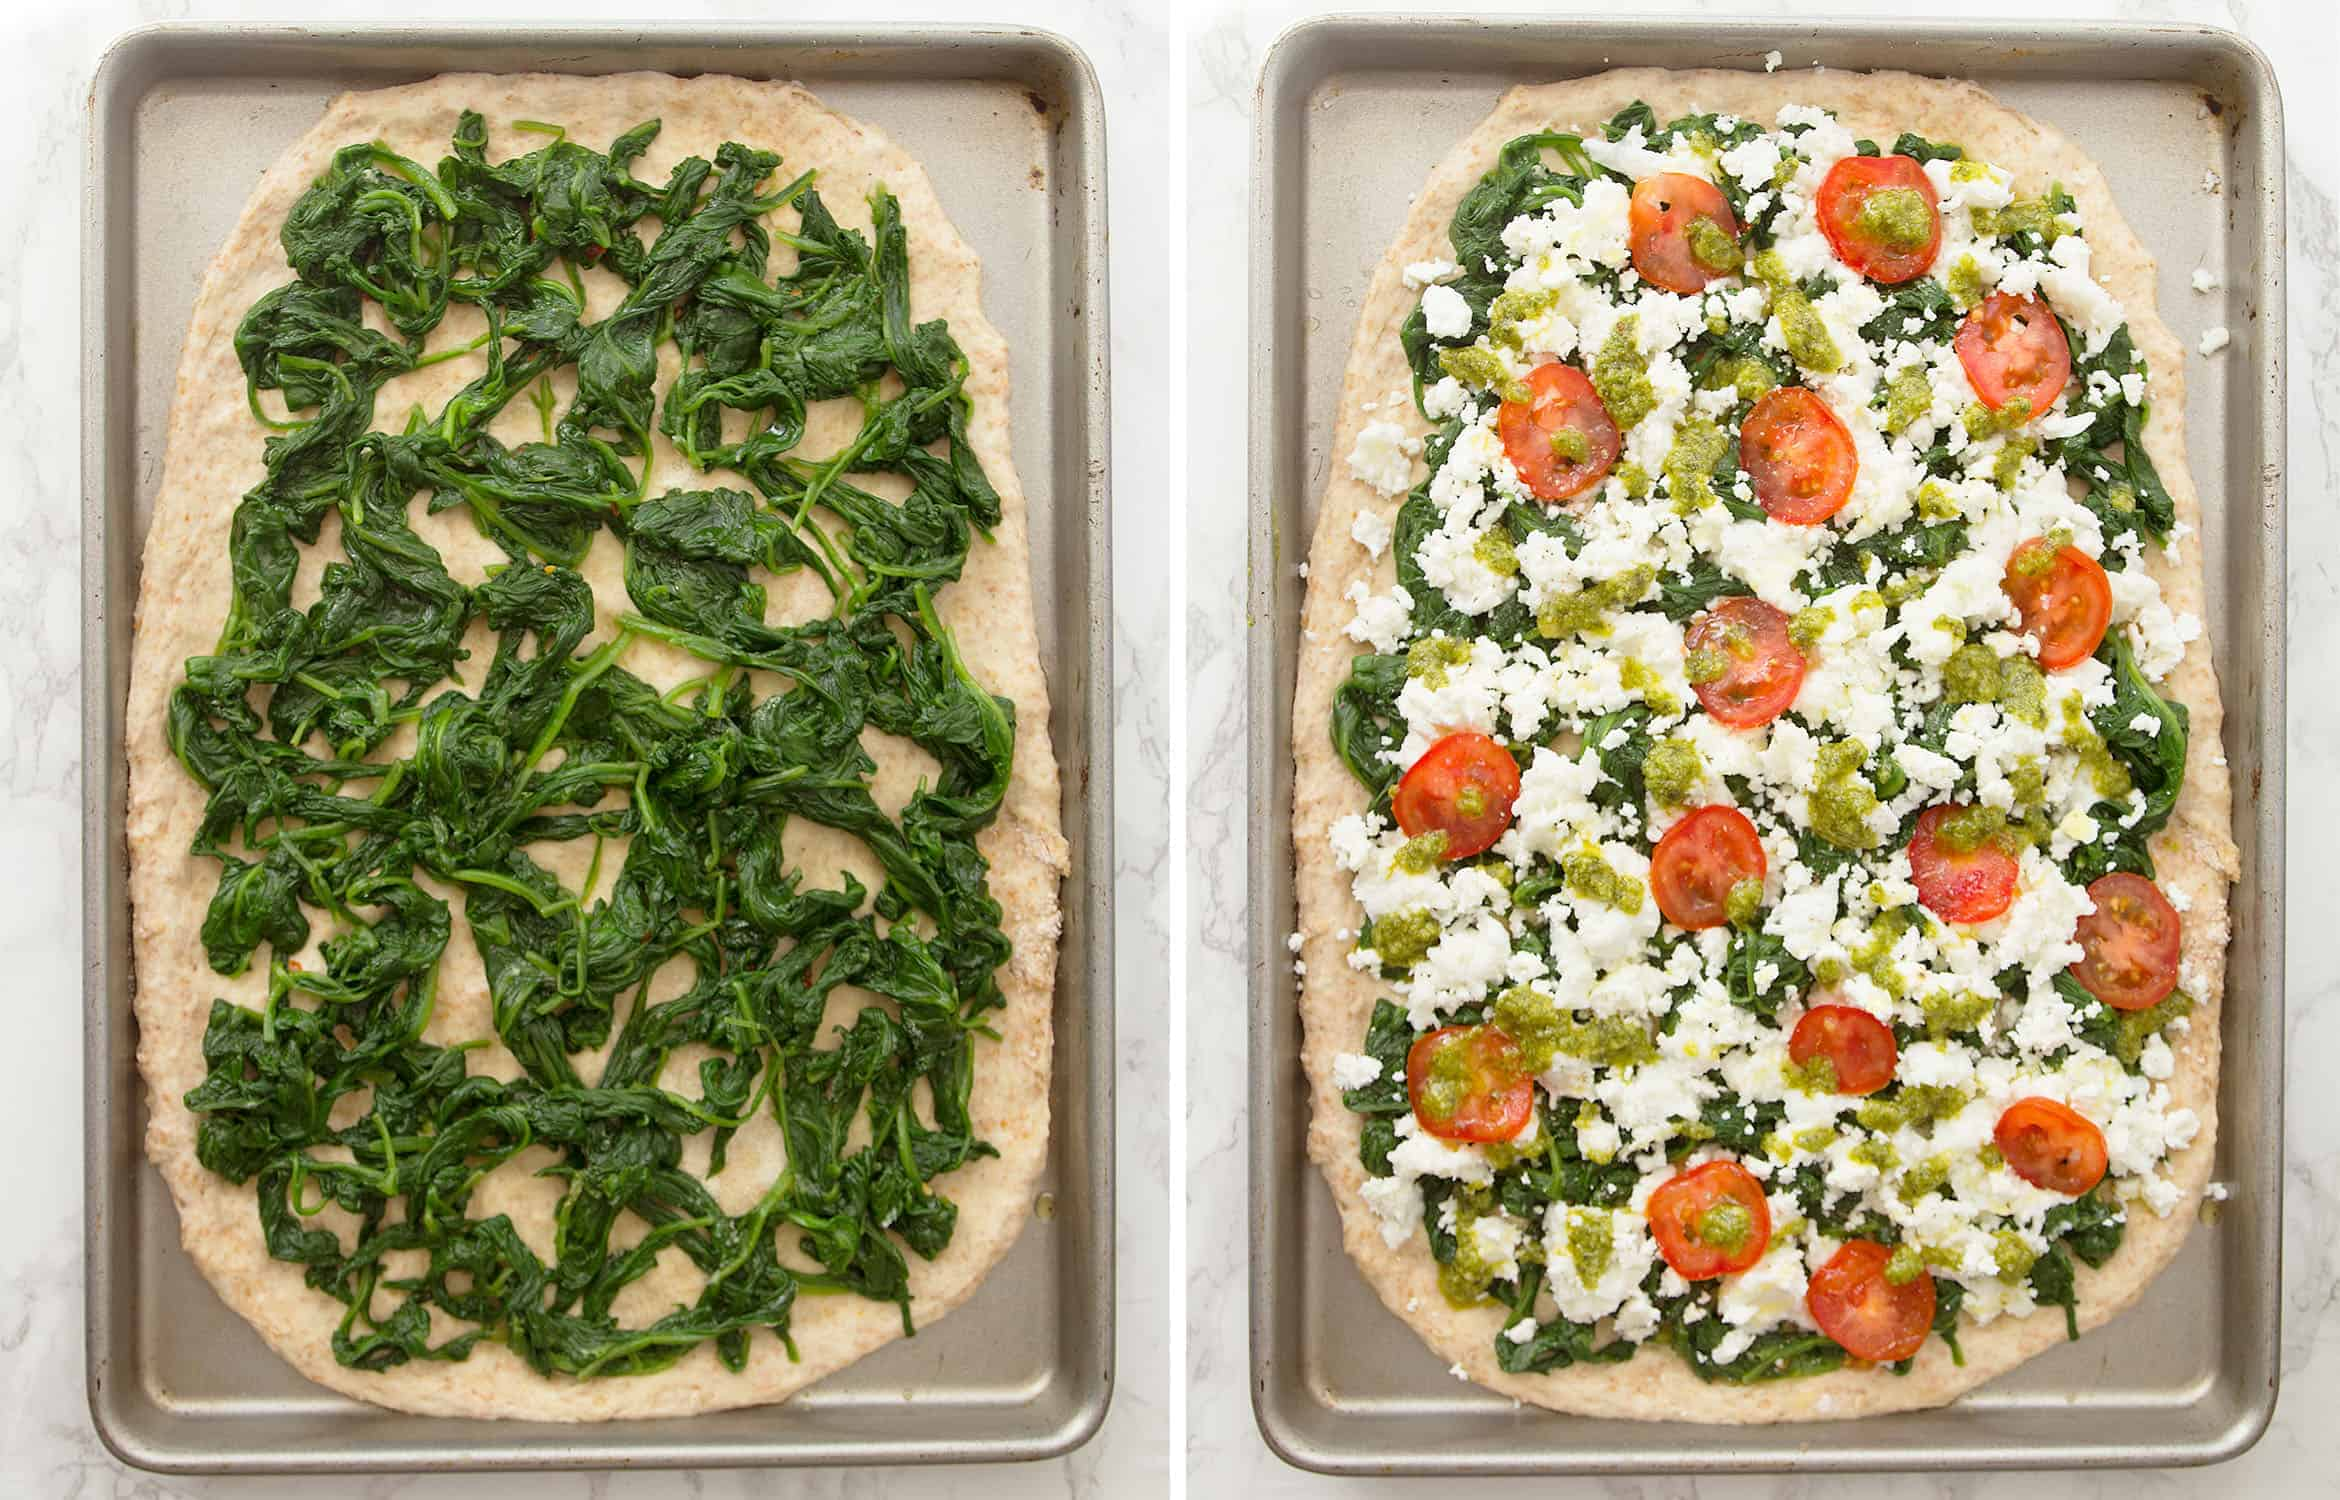 Spinach, feta and pesto topping!